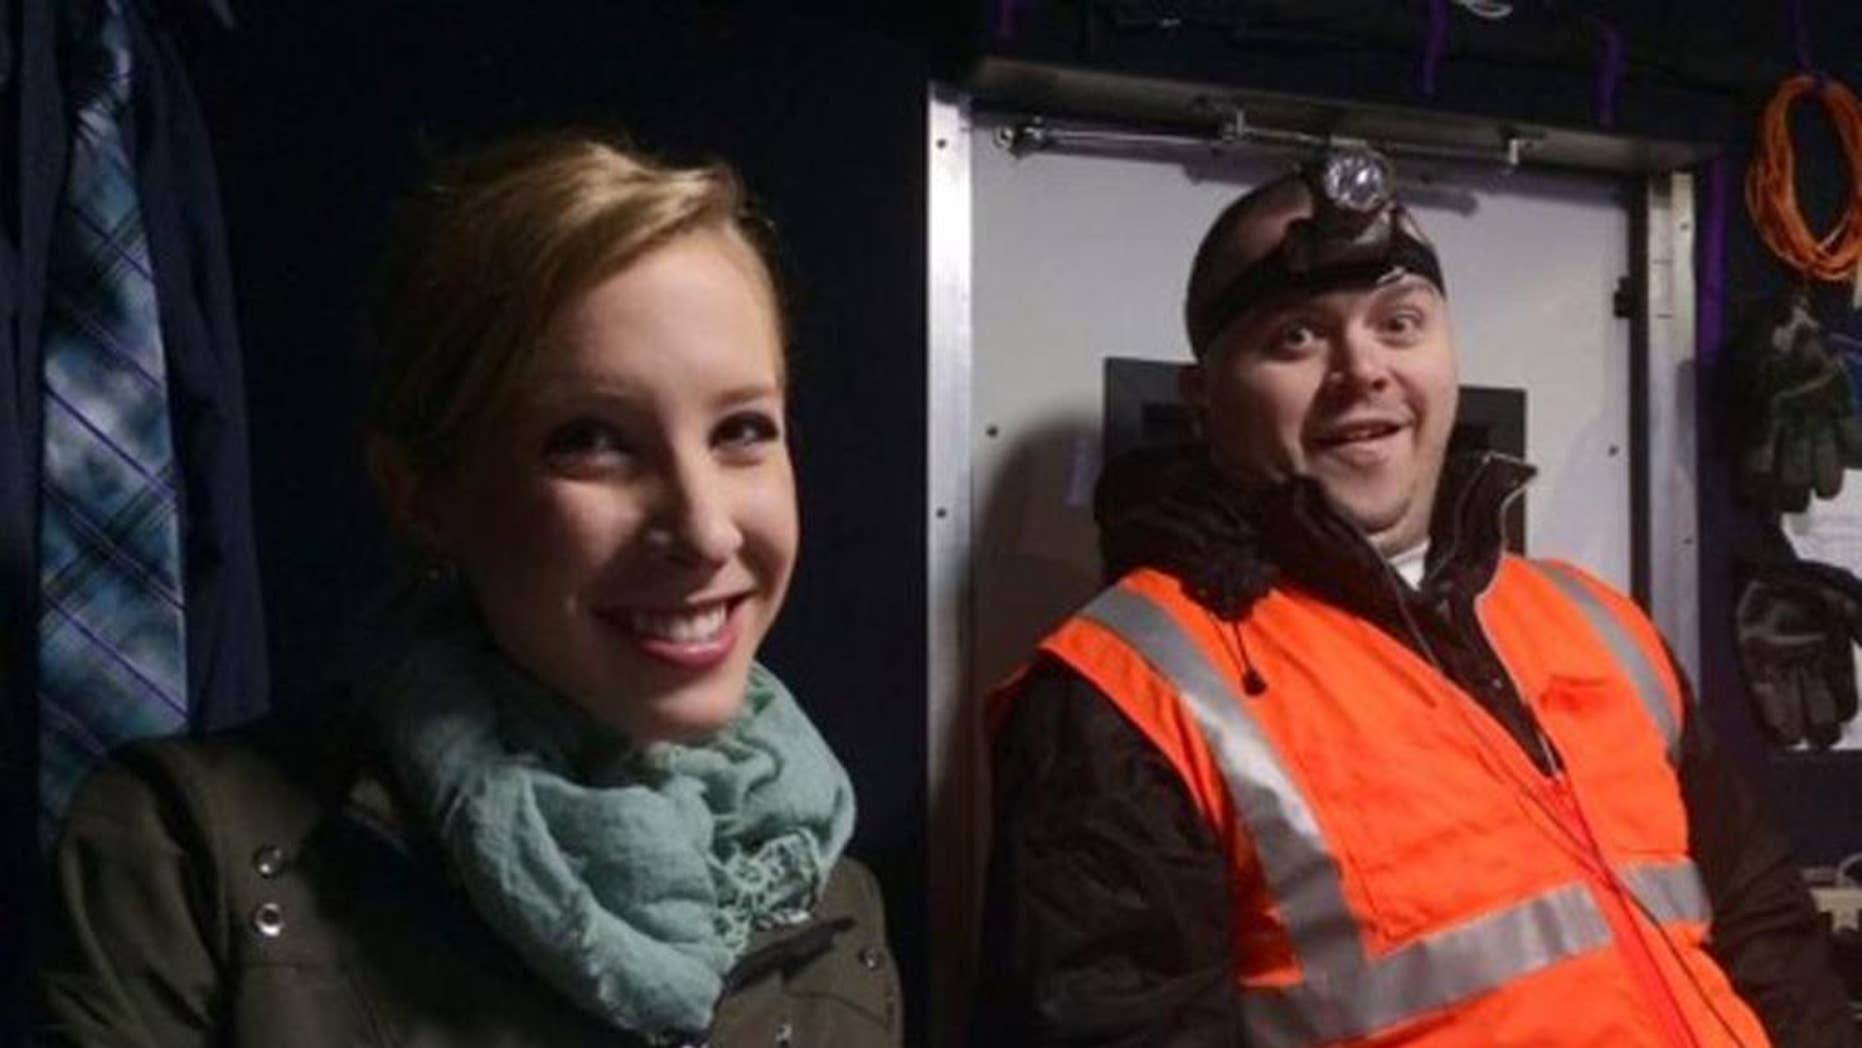 FILE - This undated file image made available by WDBJ-TV shows reporter Alison Parker, left, and cameraman Adam Ward. Community religious leaders gathered Sunday, Aug. 30, 2015 to remember Parker and Ward, who were shot and killed by a former co-worker on Aug. 26. (Courtesy of WDBJ-TV via AP, File) MANDATORY CREDIT